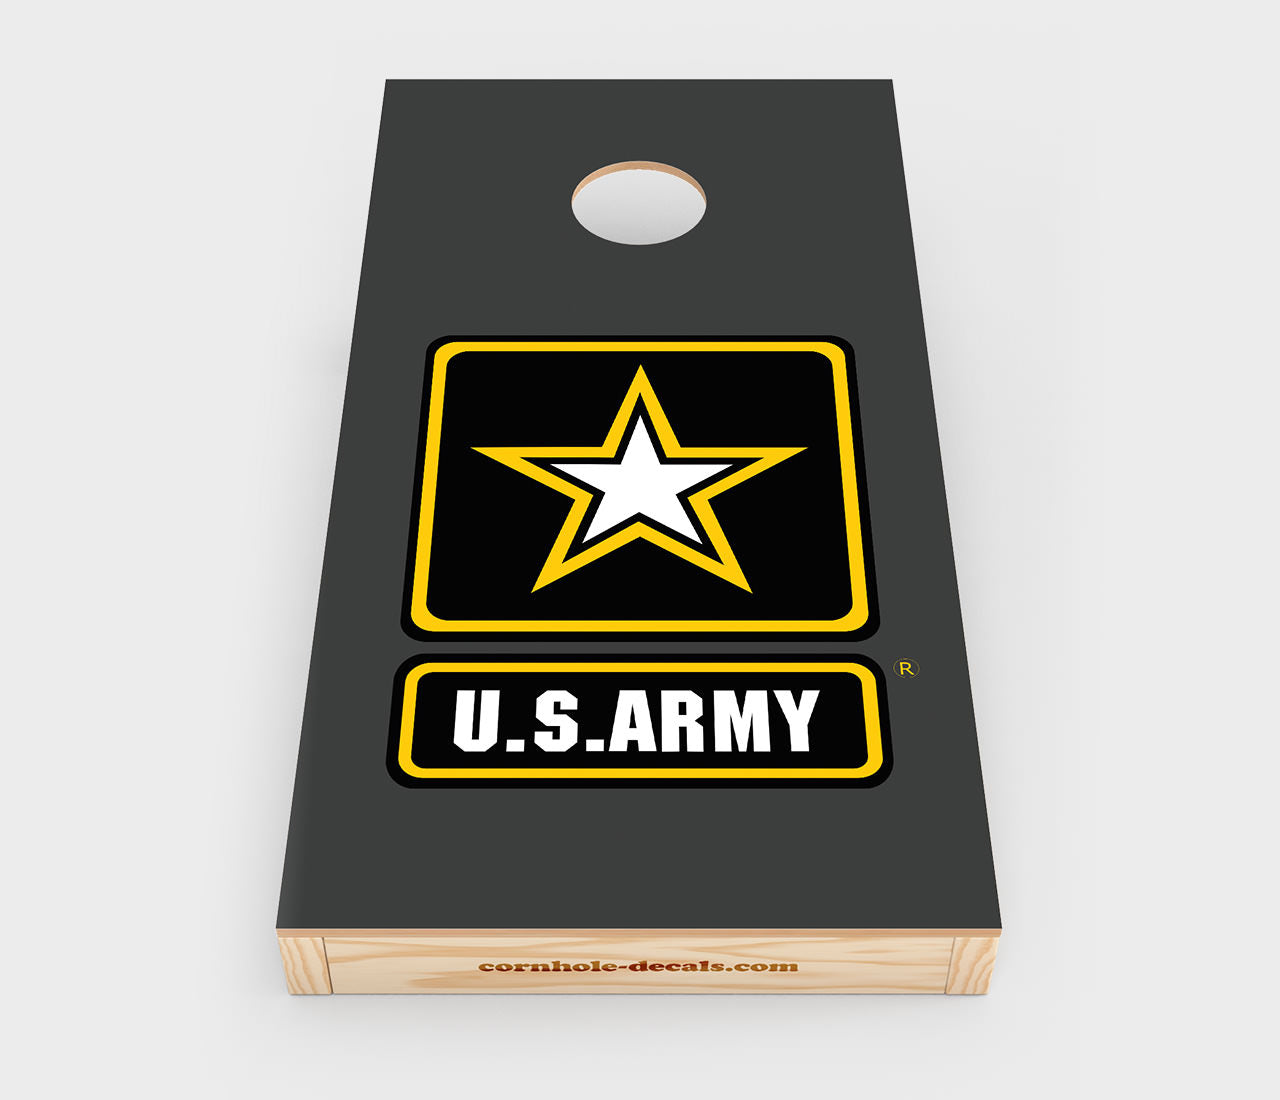 US Army Cornhole Decal